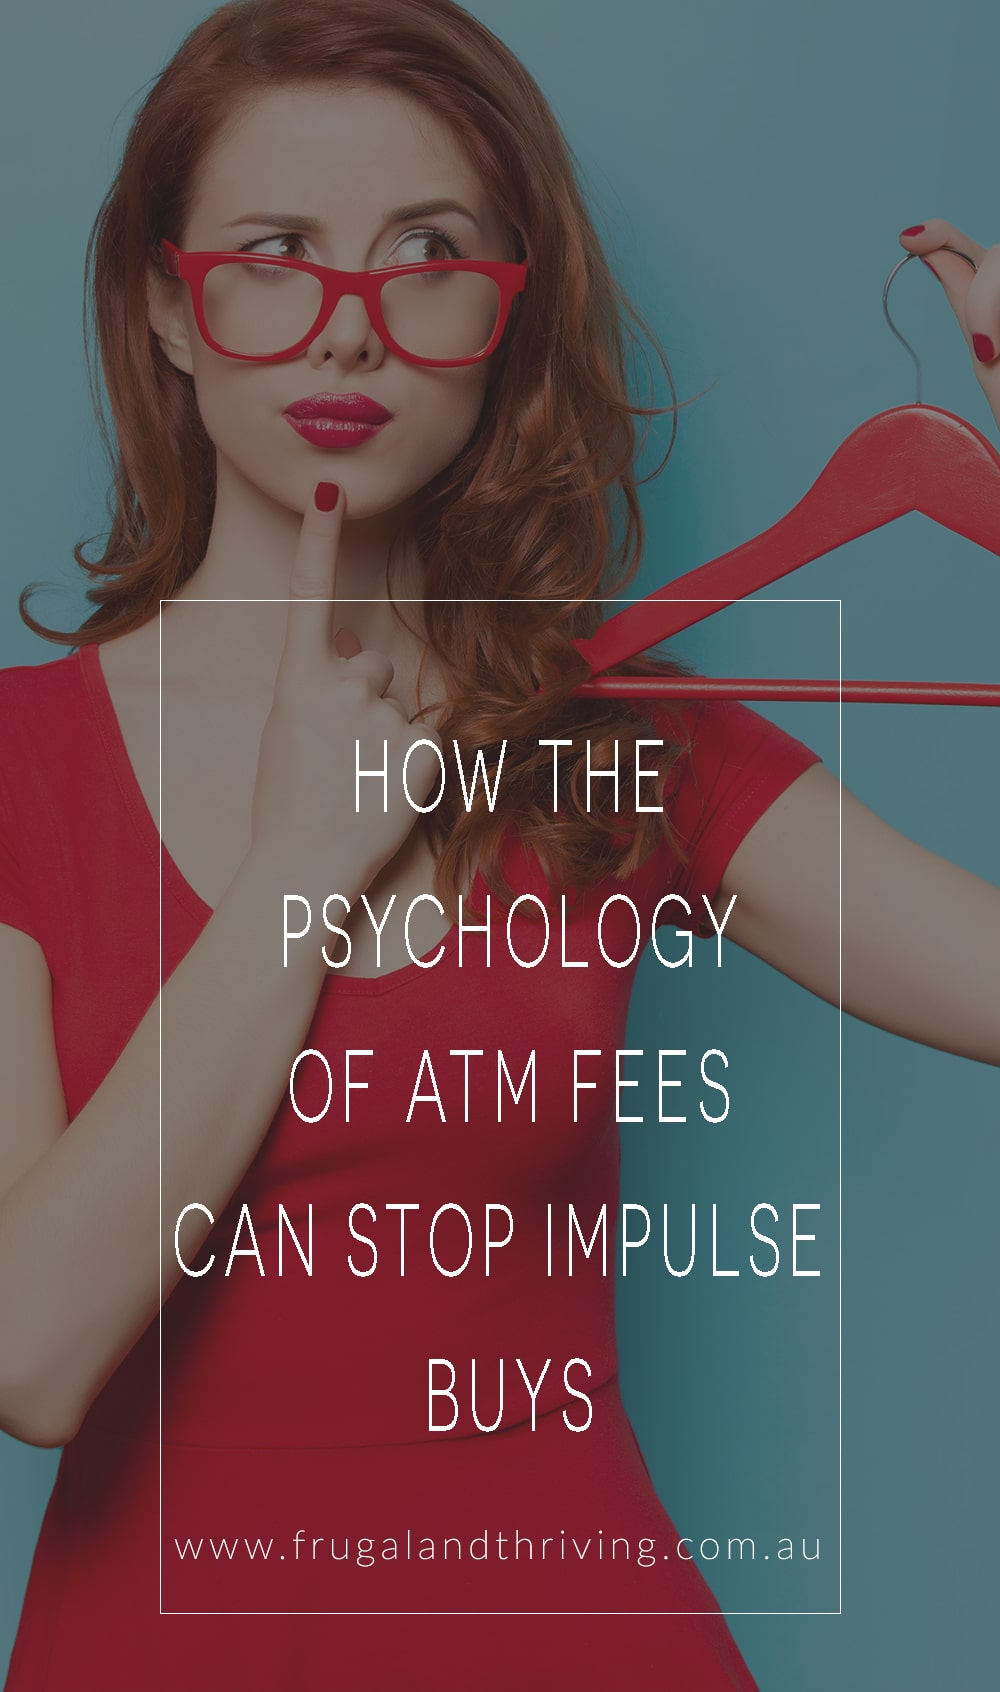 how the psychology of ATM fees can stop impulse buying